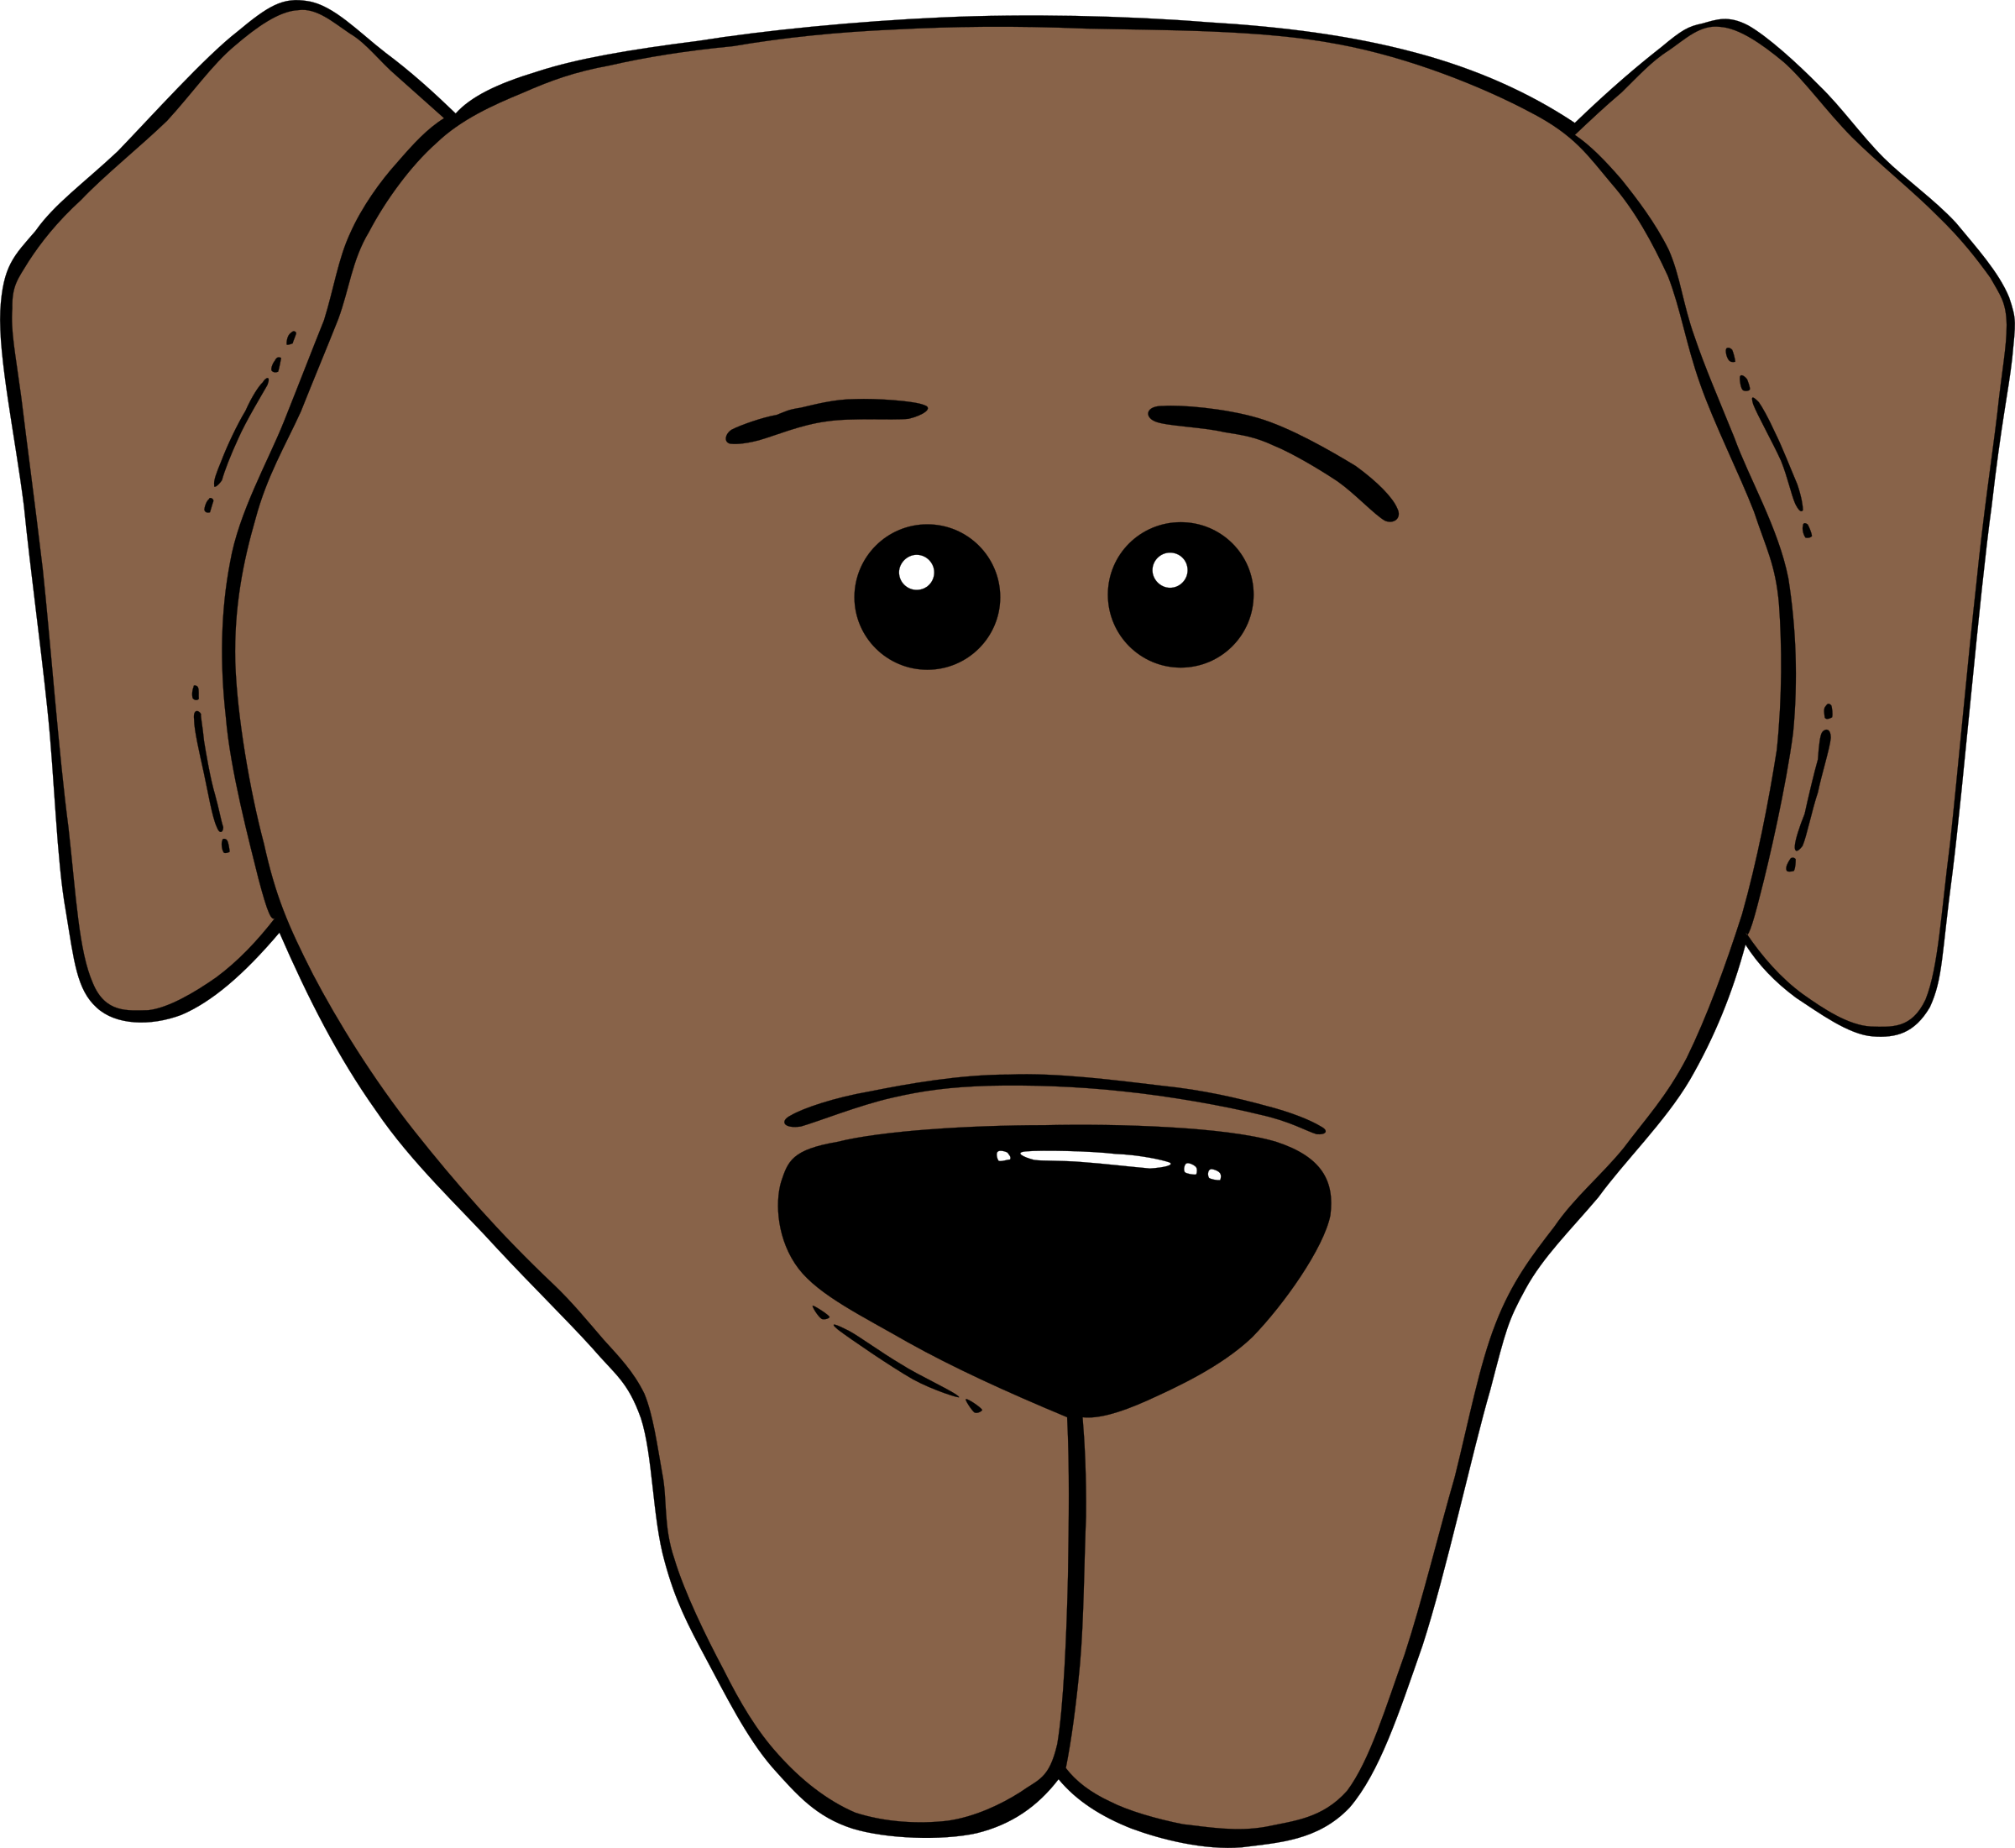 Dog Face Cartoon   World Label By Gerald G